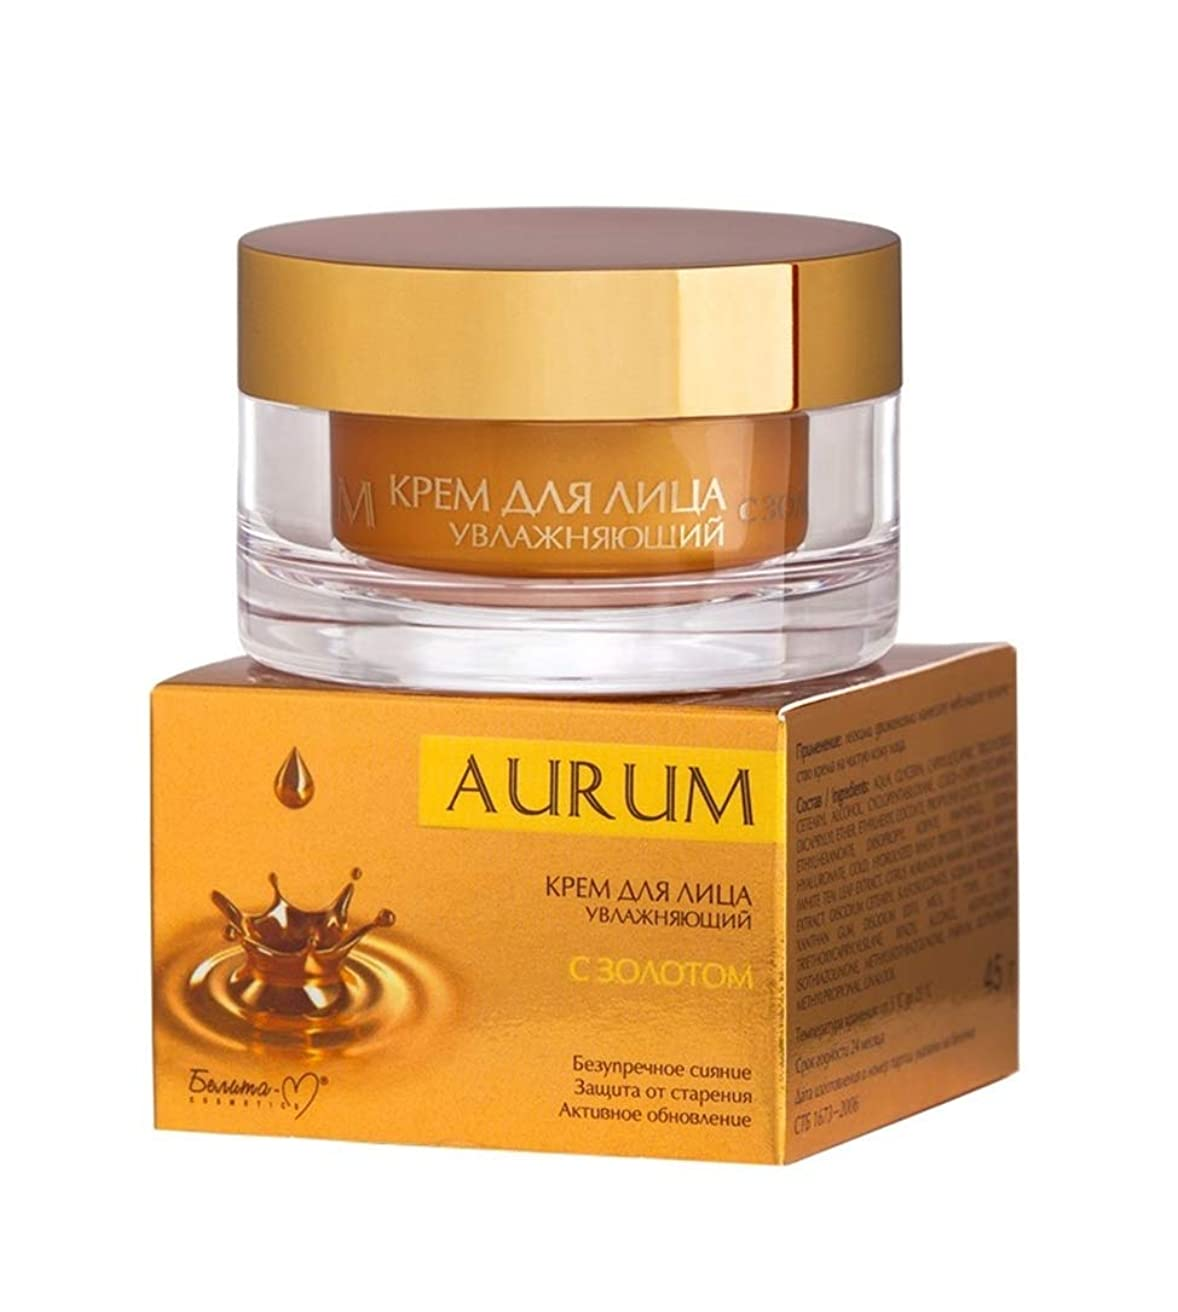 MOISTURIZING DAY CREAM FOR FACE WITH GOLD | hyaluronic acid, wheat proteins, extracts of white tea and orange blossoms, 45 g